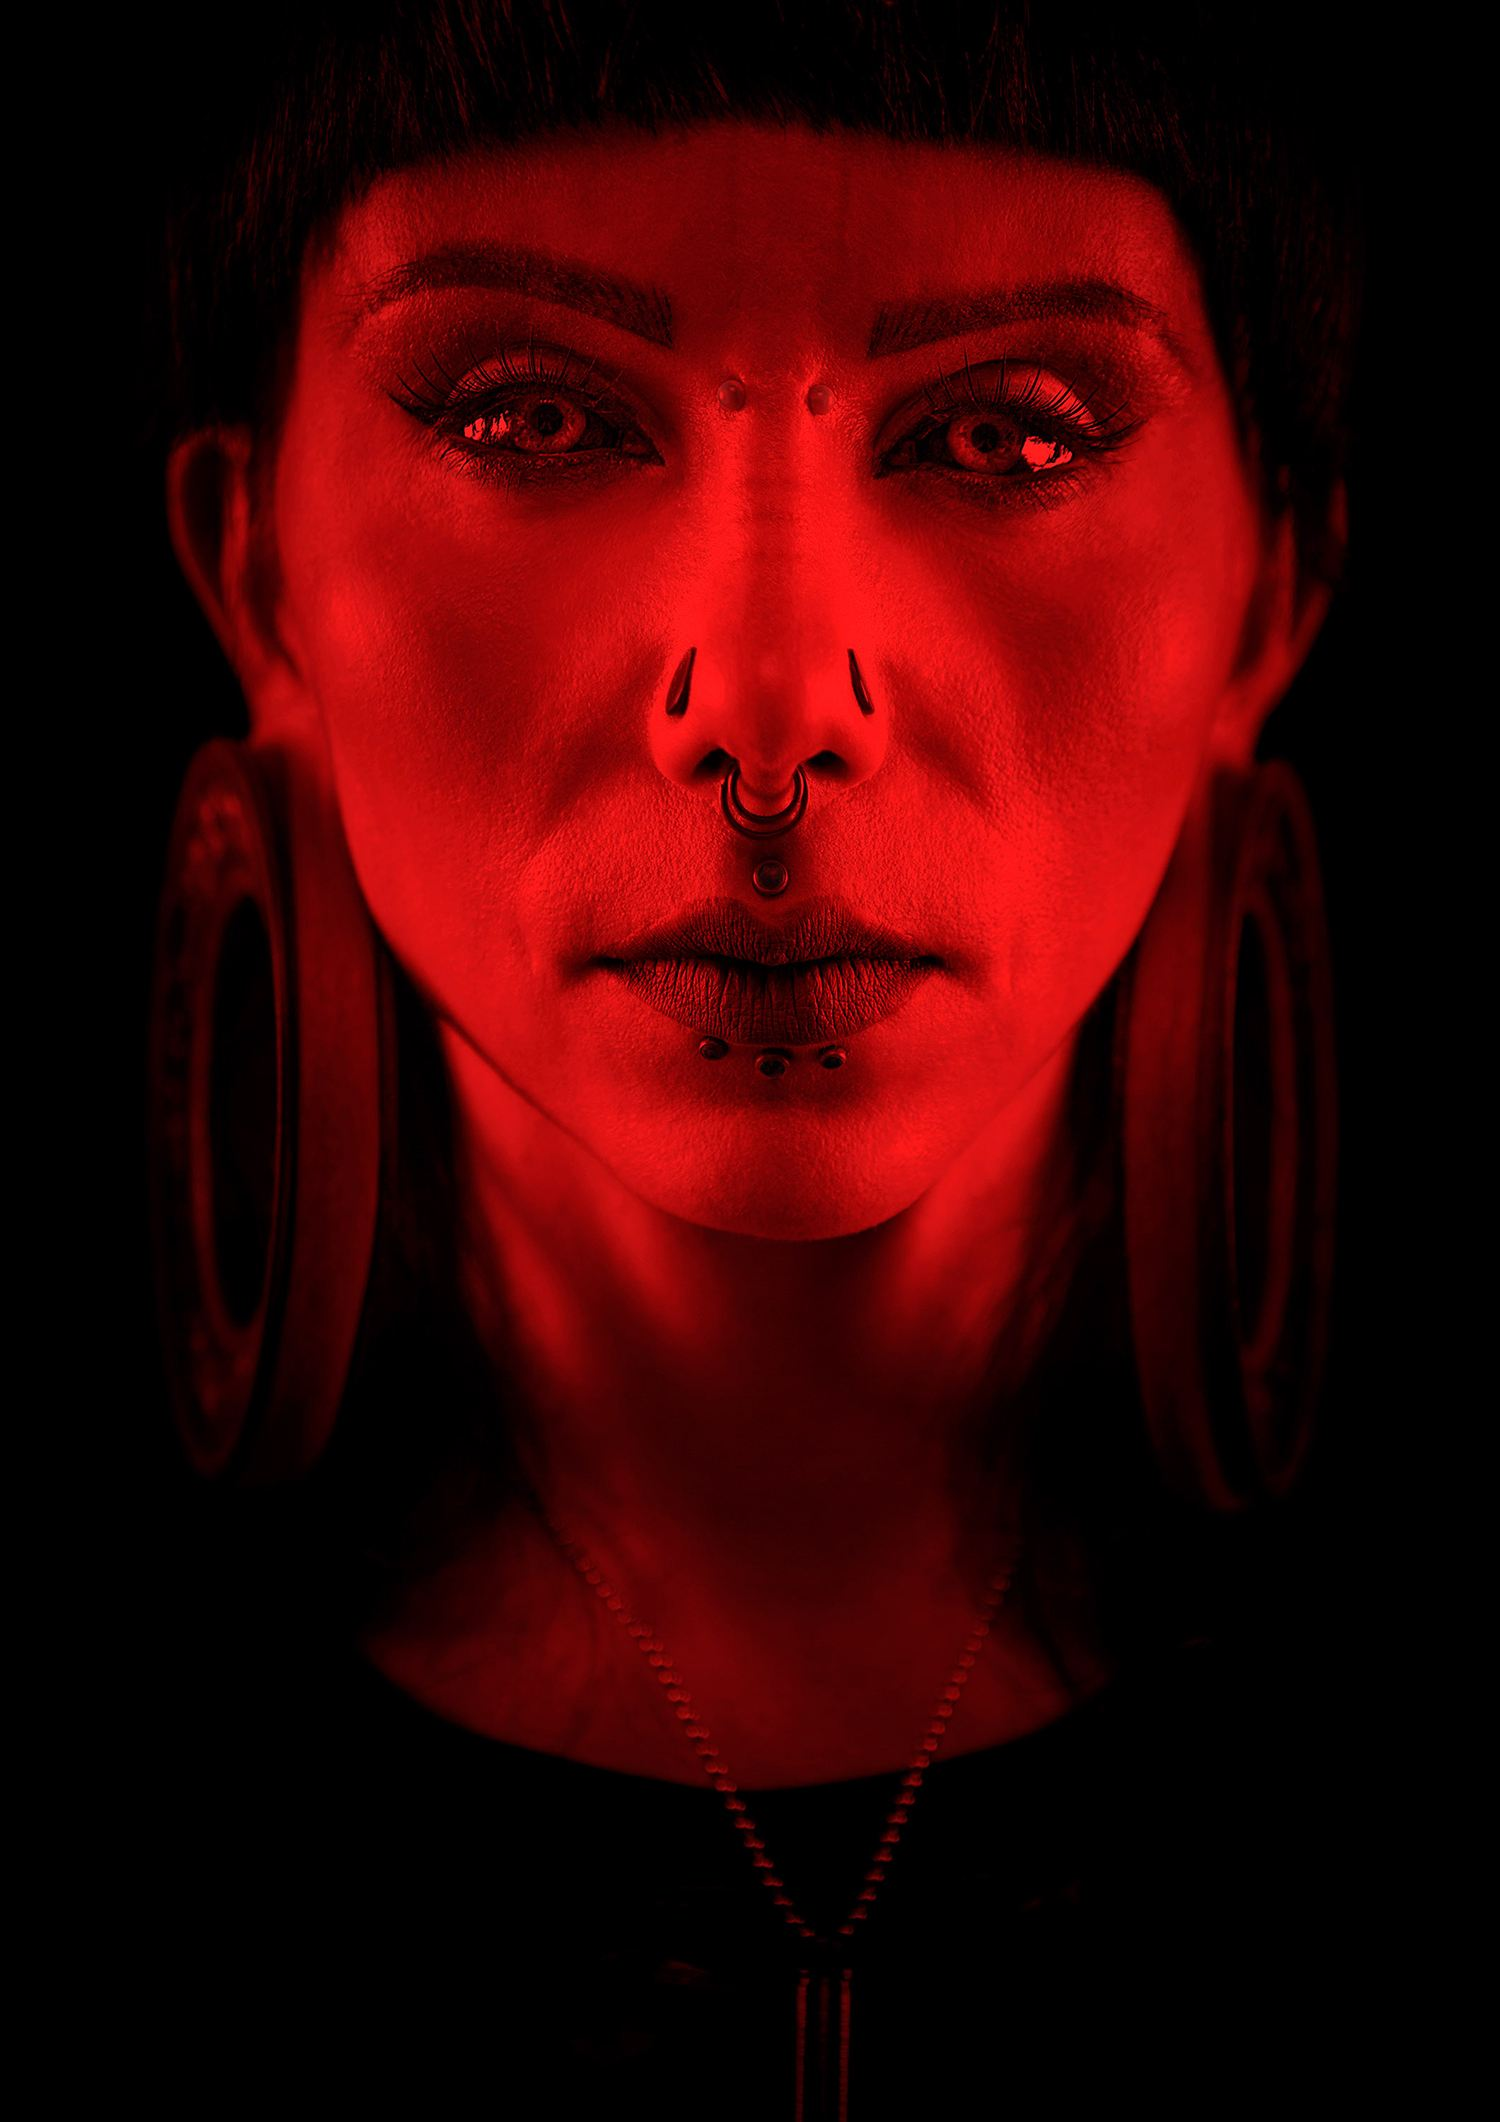 veronica blades in red lighting, photography